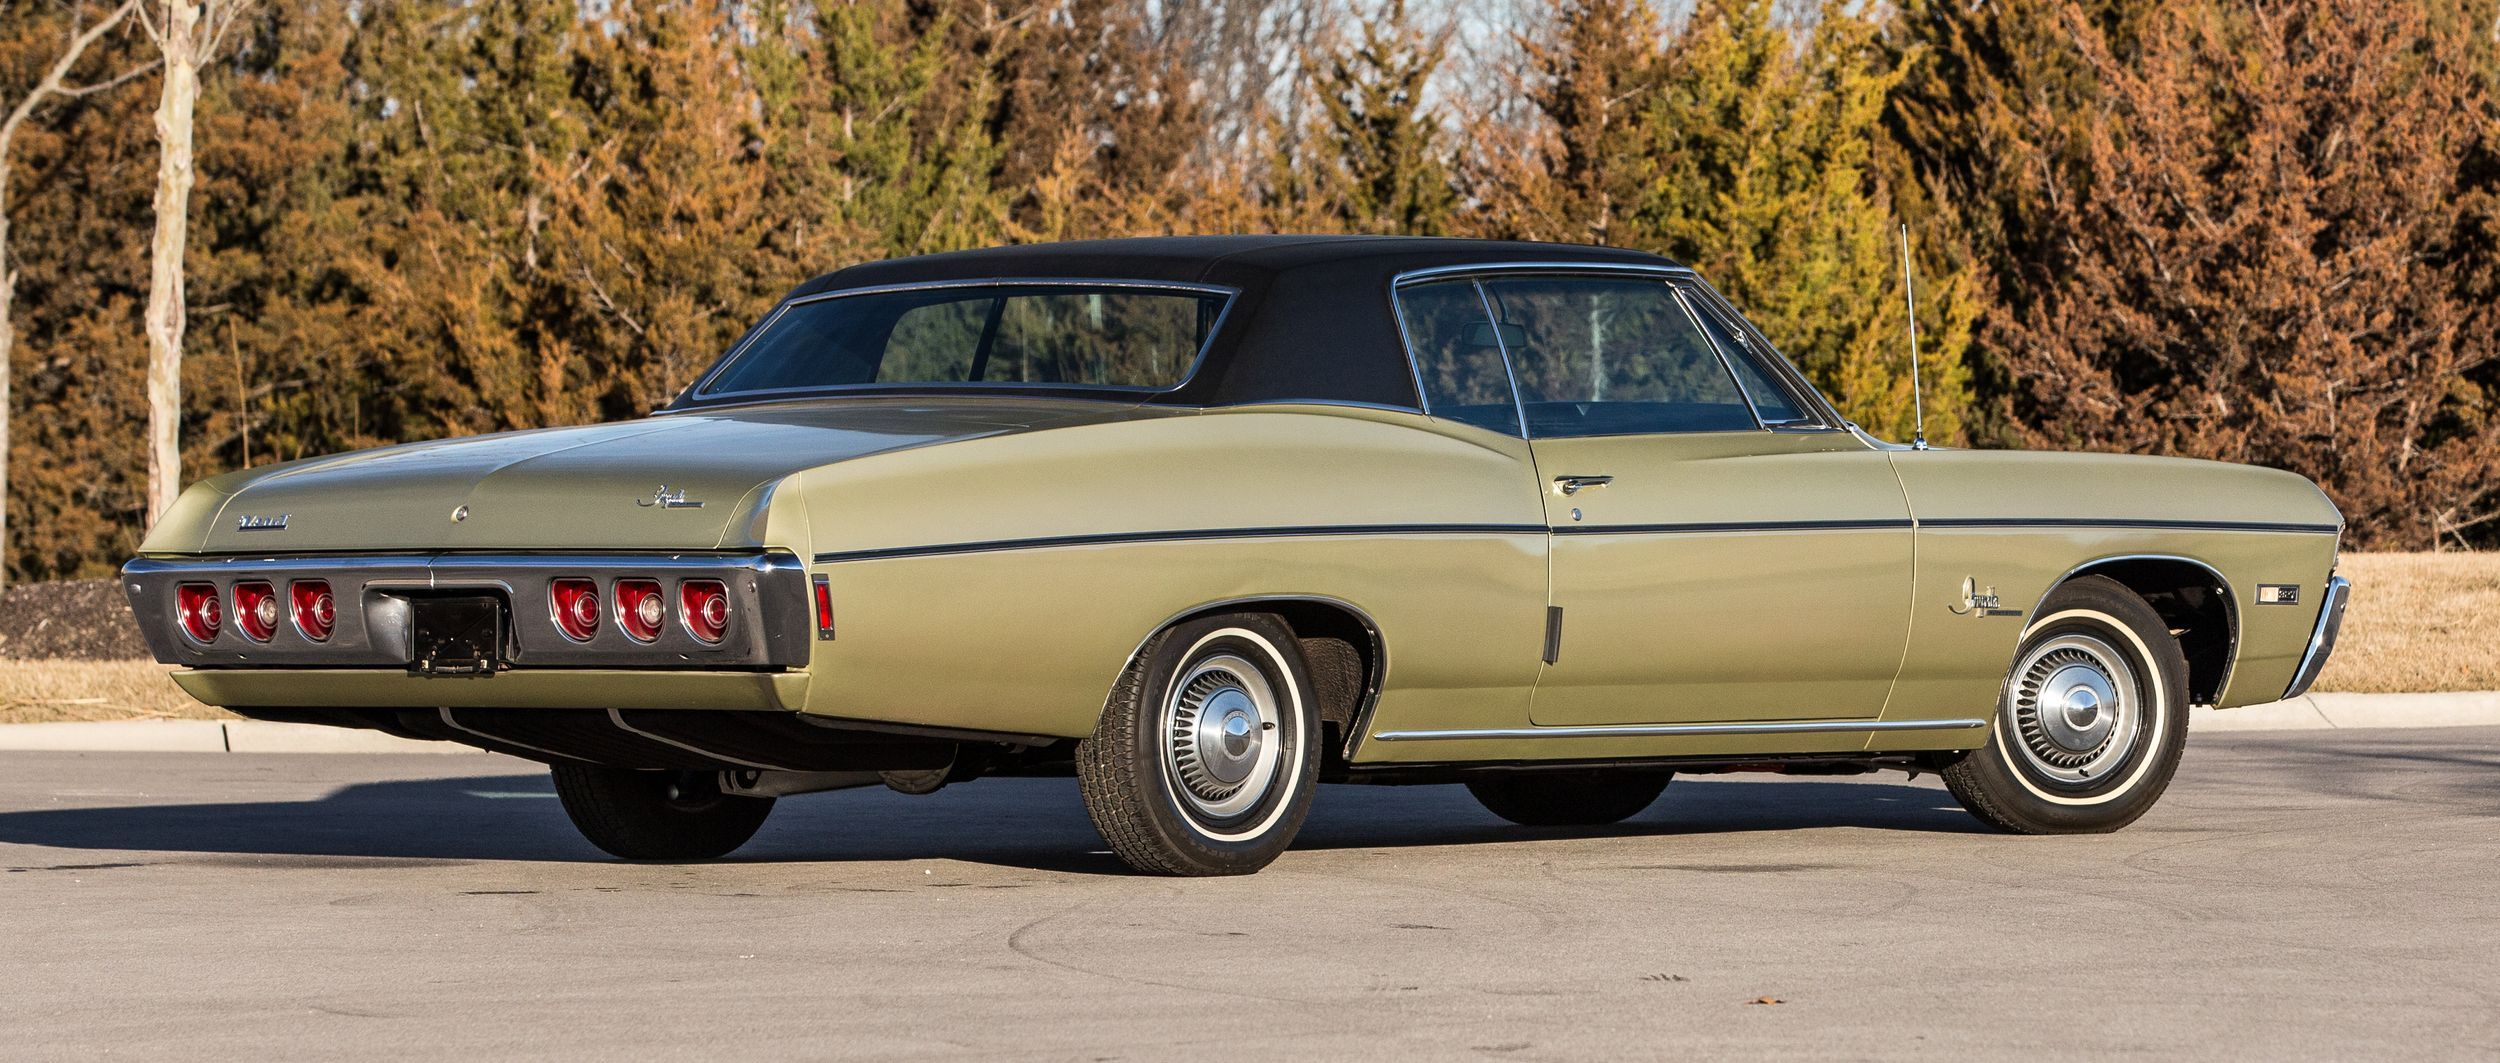 Low-mileage, unrestored 1968 Chevrolet Impala SS sells for ...